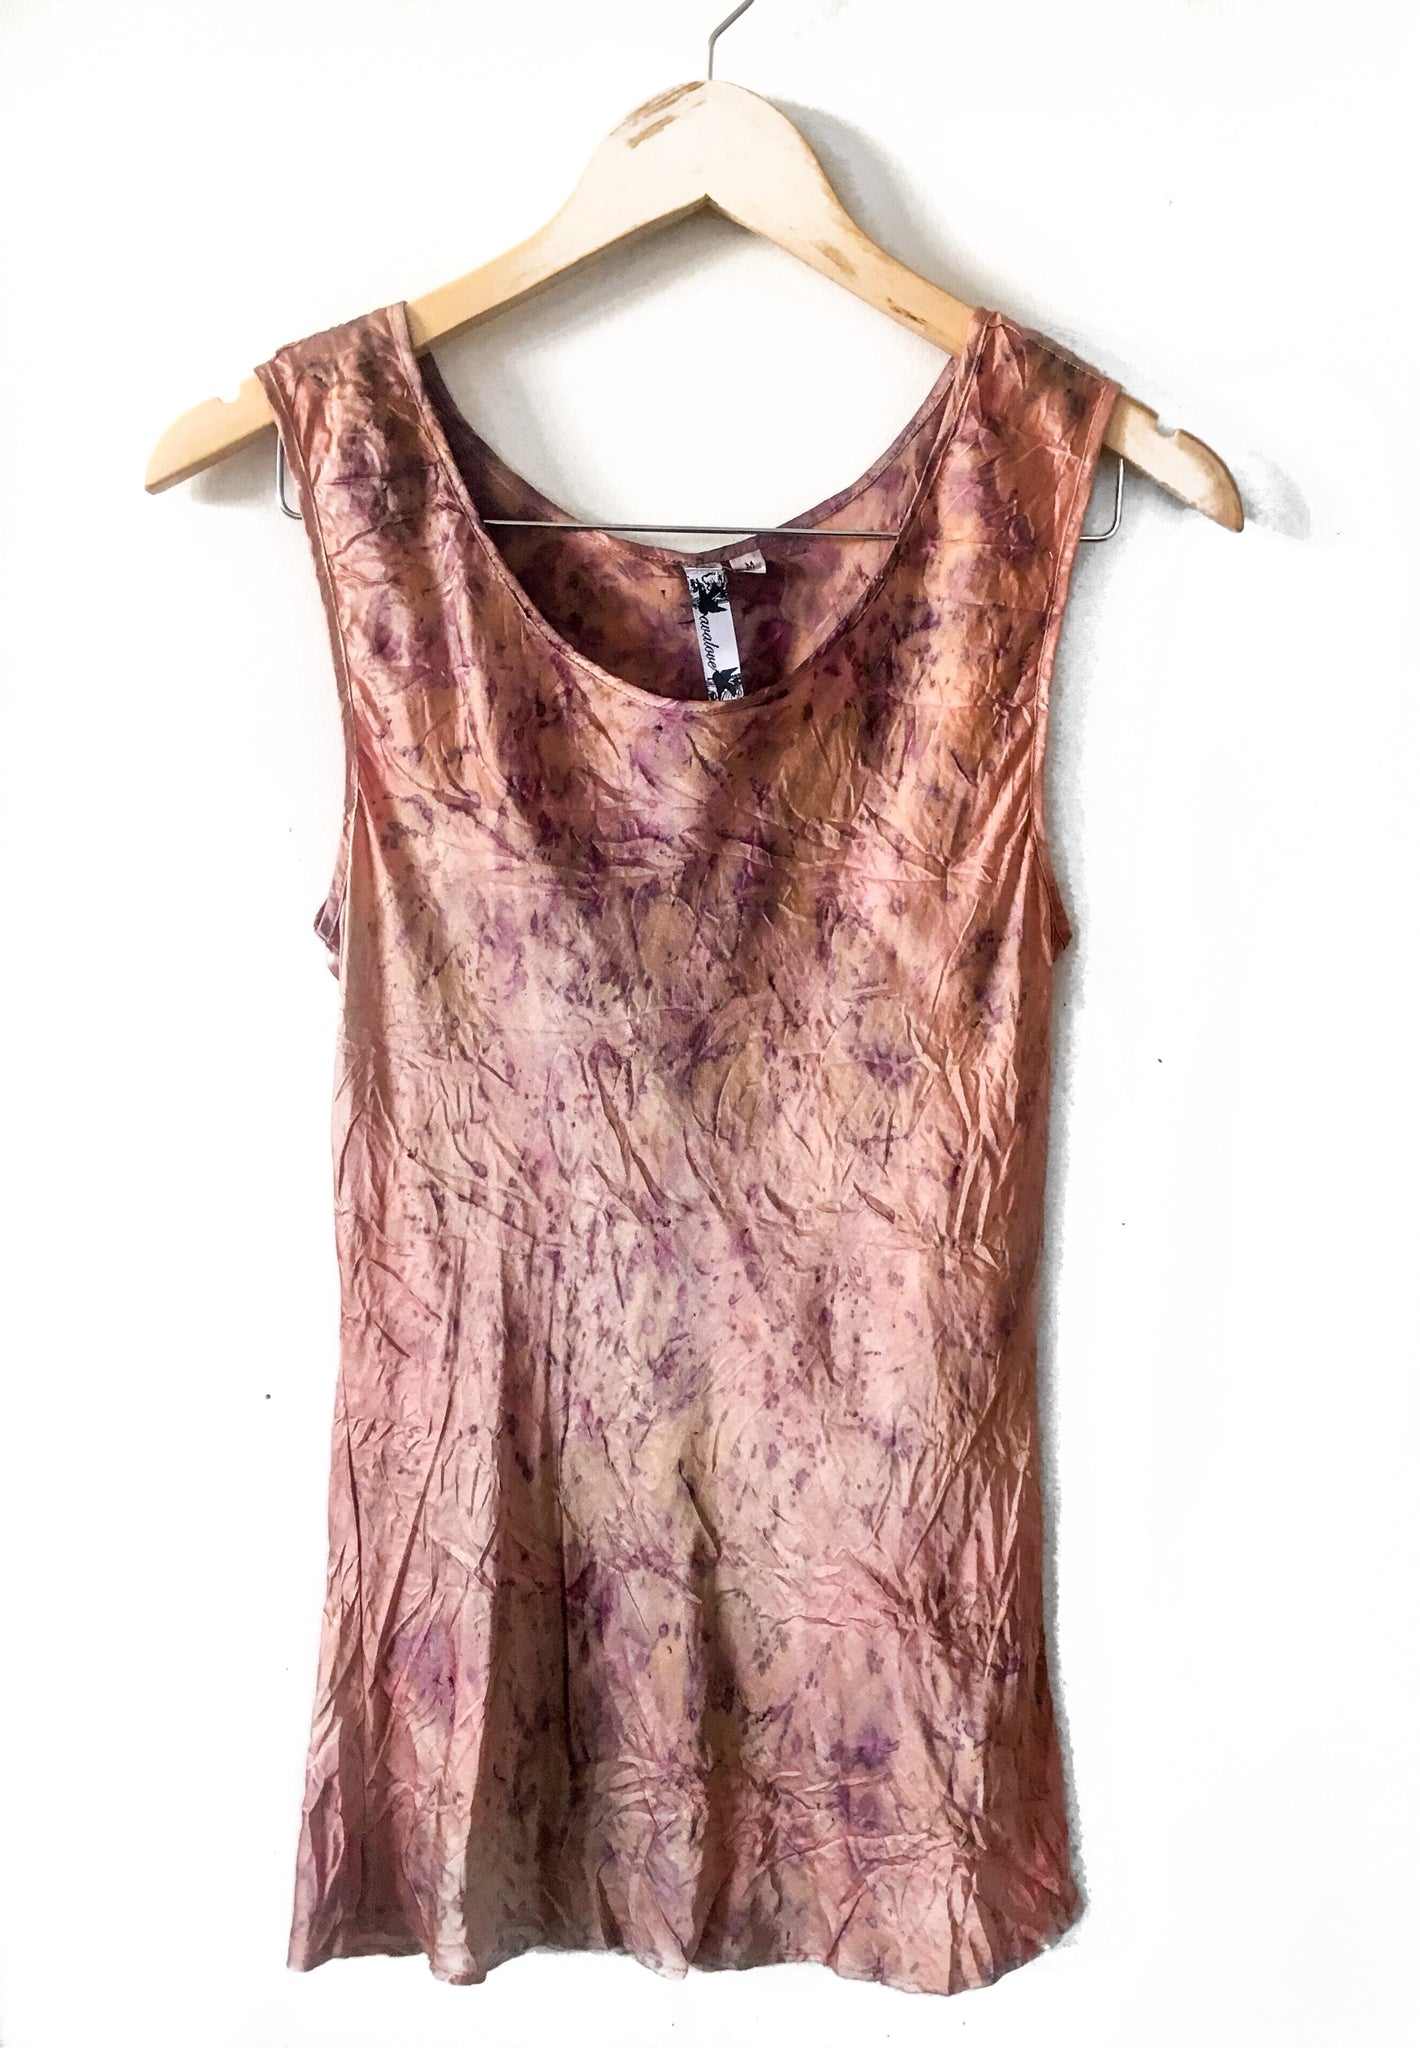 Wabi Sabi Sale-Flower Tank Wide Strap-Dye Seconds-100% Silk and dyed with flower petals-with code$43.50